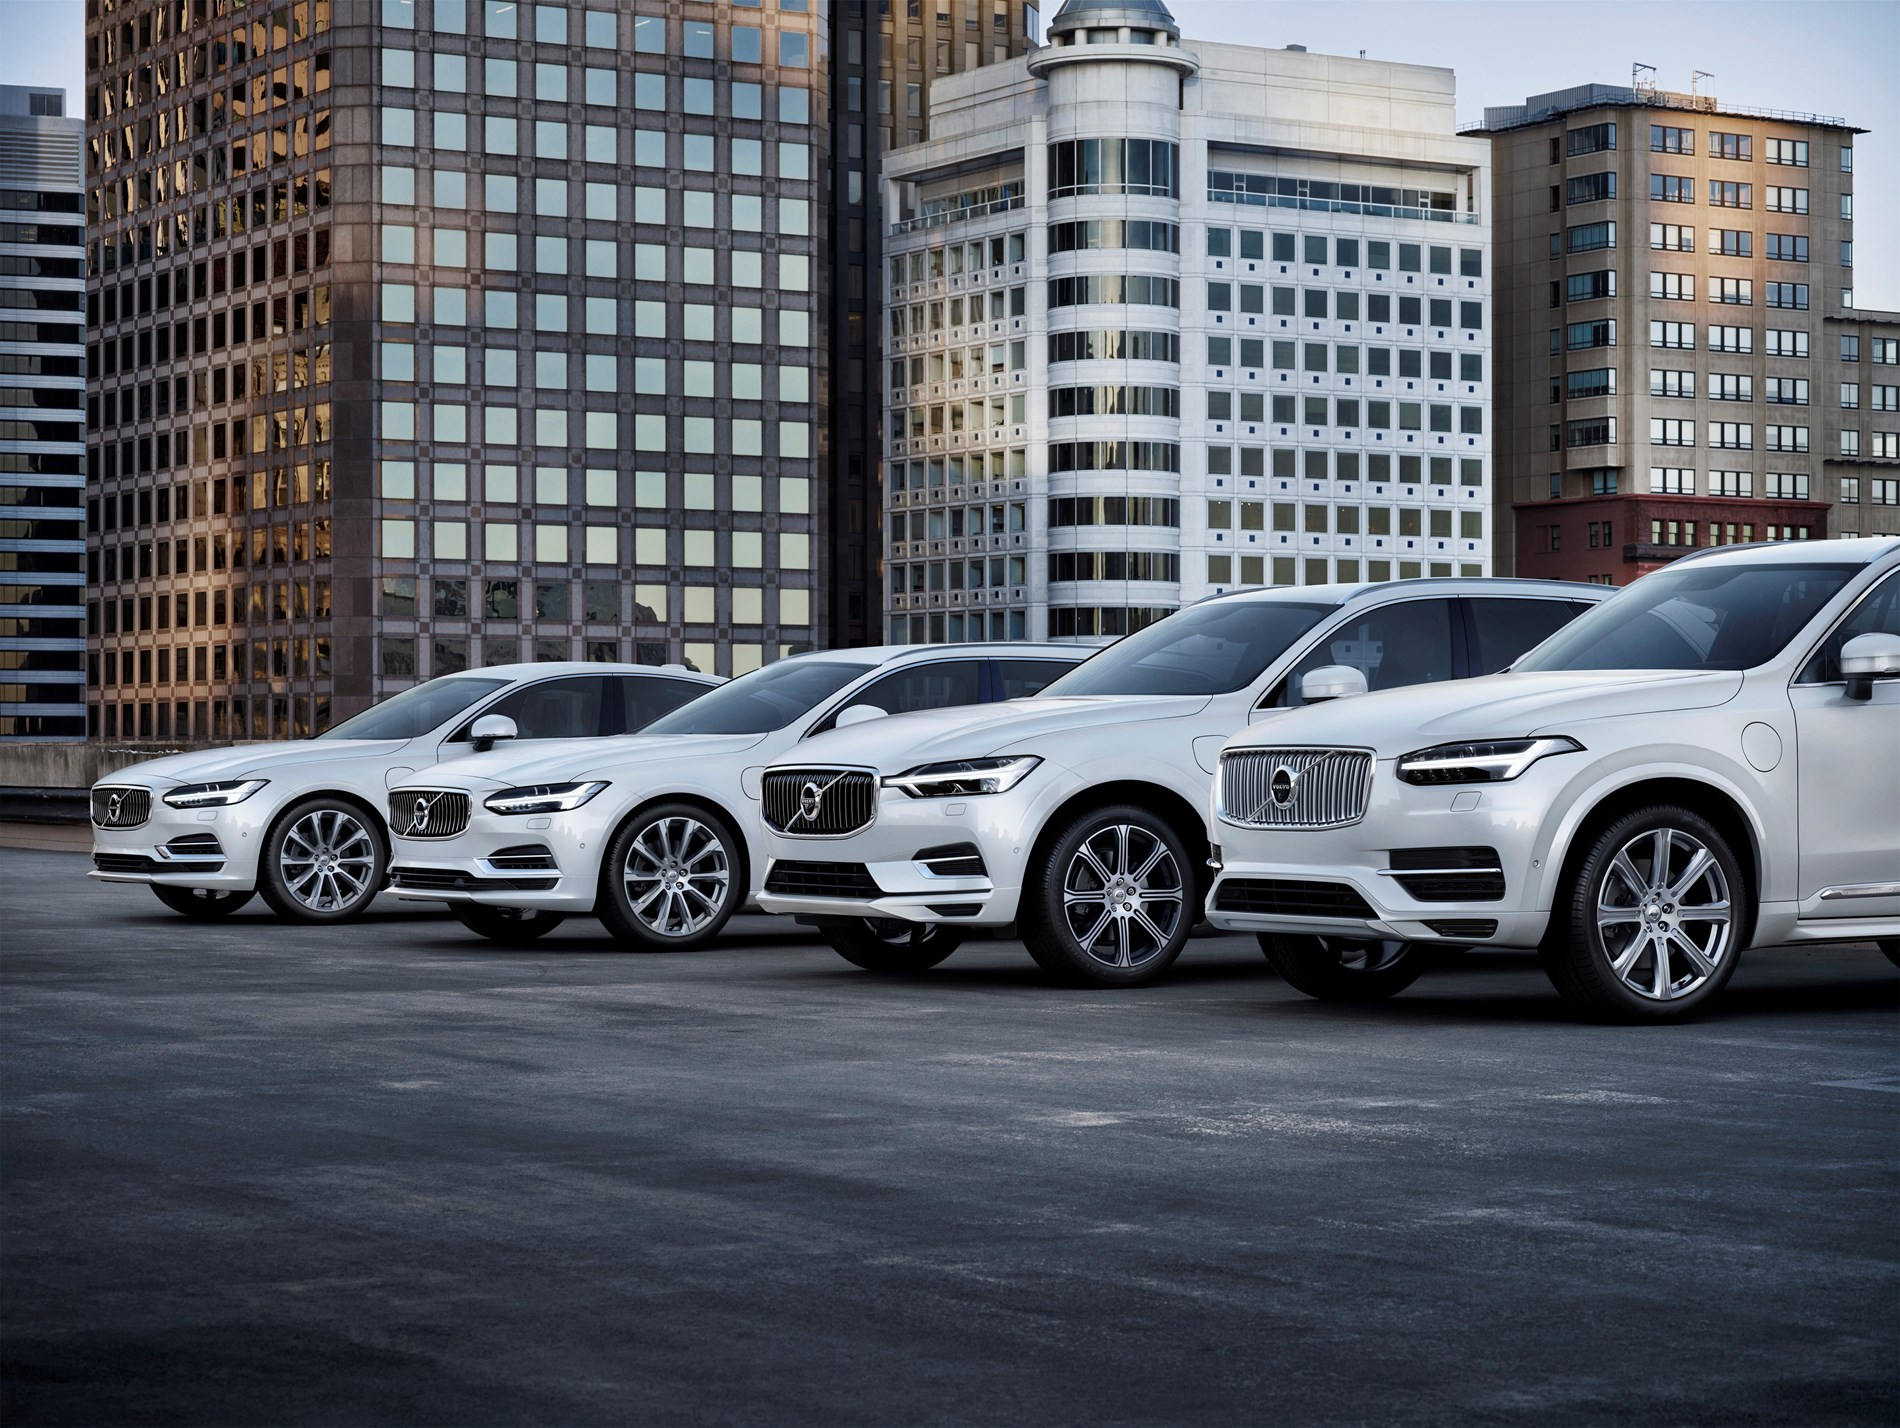 Elektrificatiestrategie van Volvo Cars erkend door de Verenigde Naties